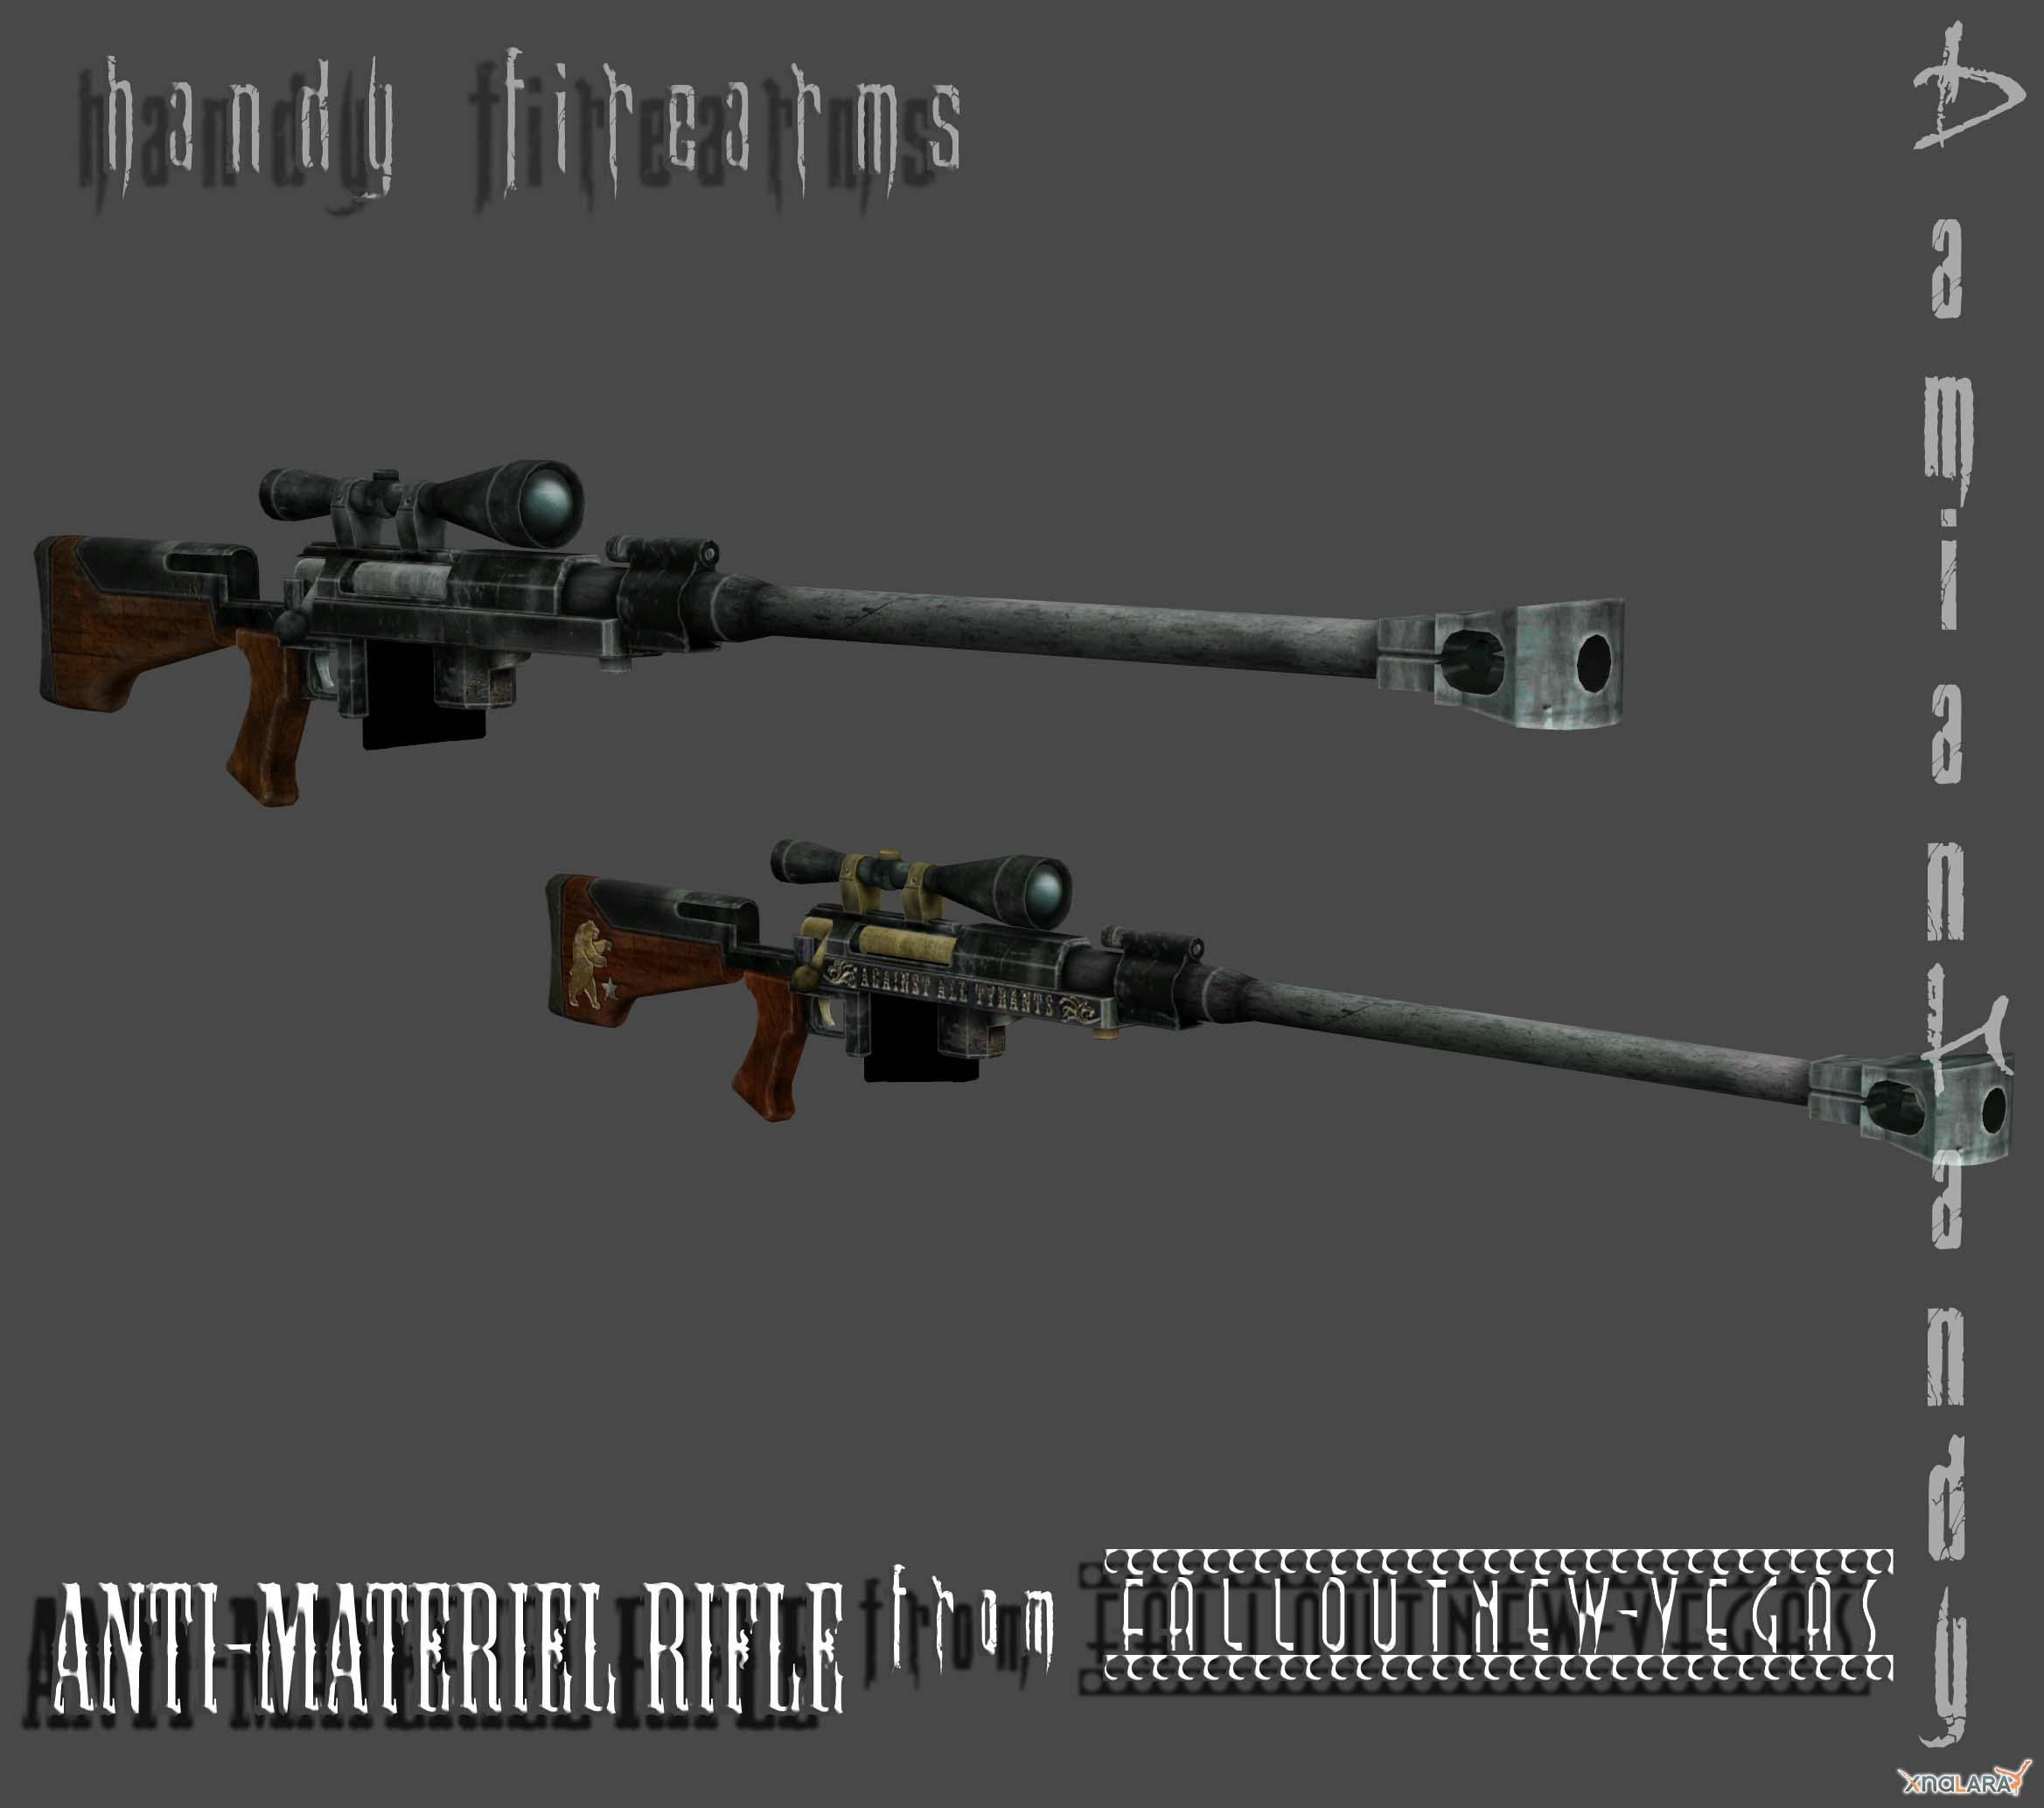 Anti Materiel Rifle anti-materiel rifle (fall out nv)damianhandy on deviantart